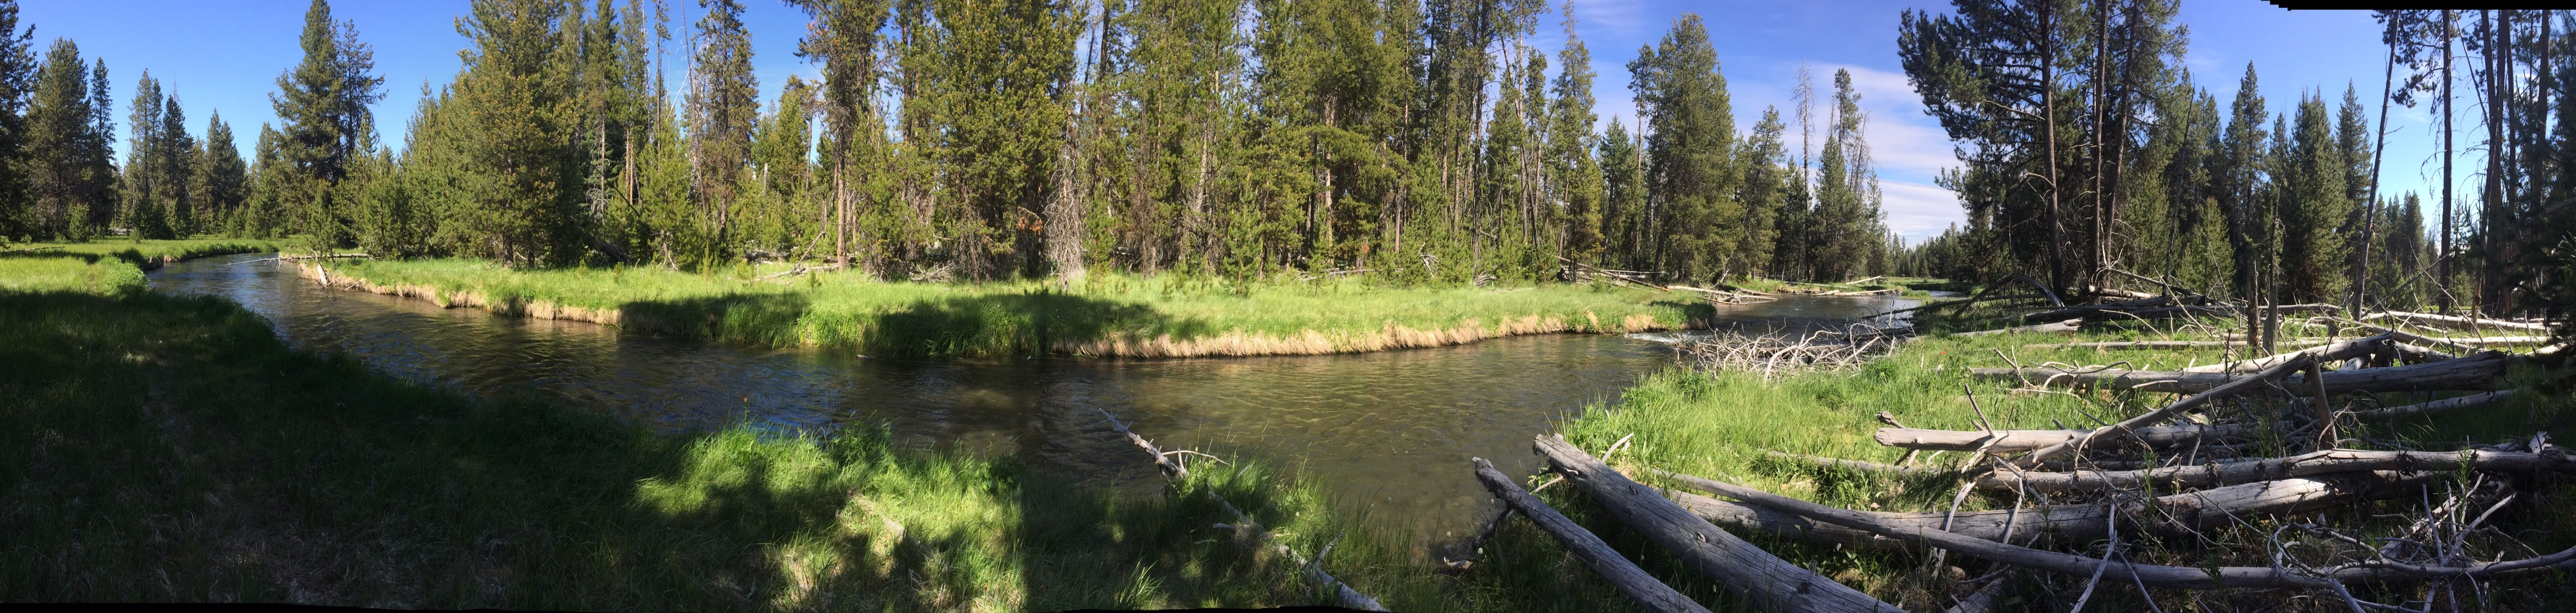 Fly Fishing the Upper Deschutes 6/13/14-6/15/14 – jdsflyfishing